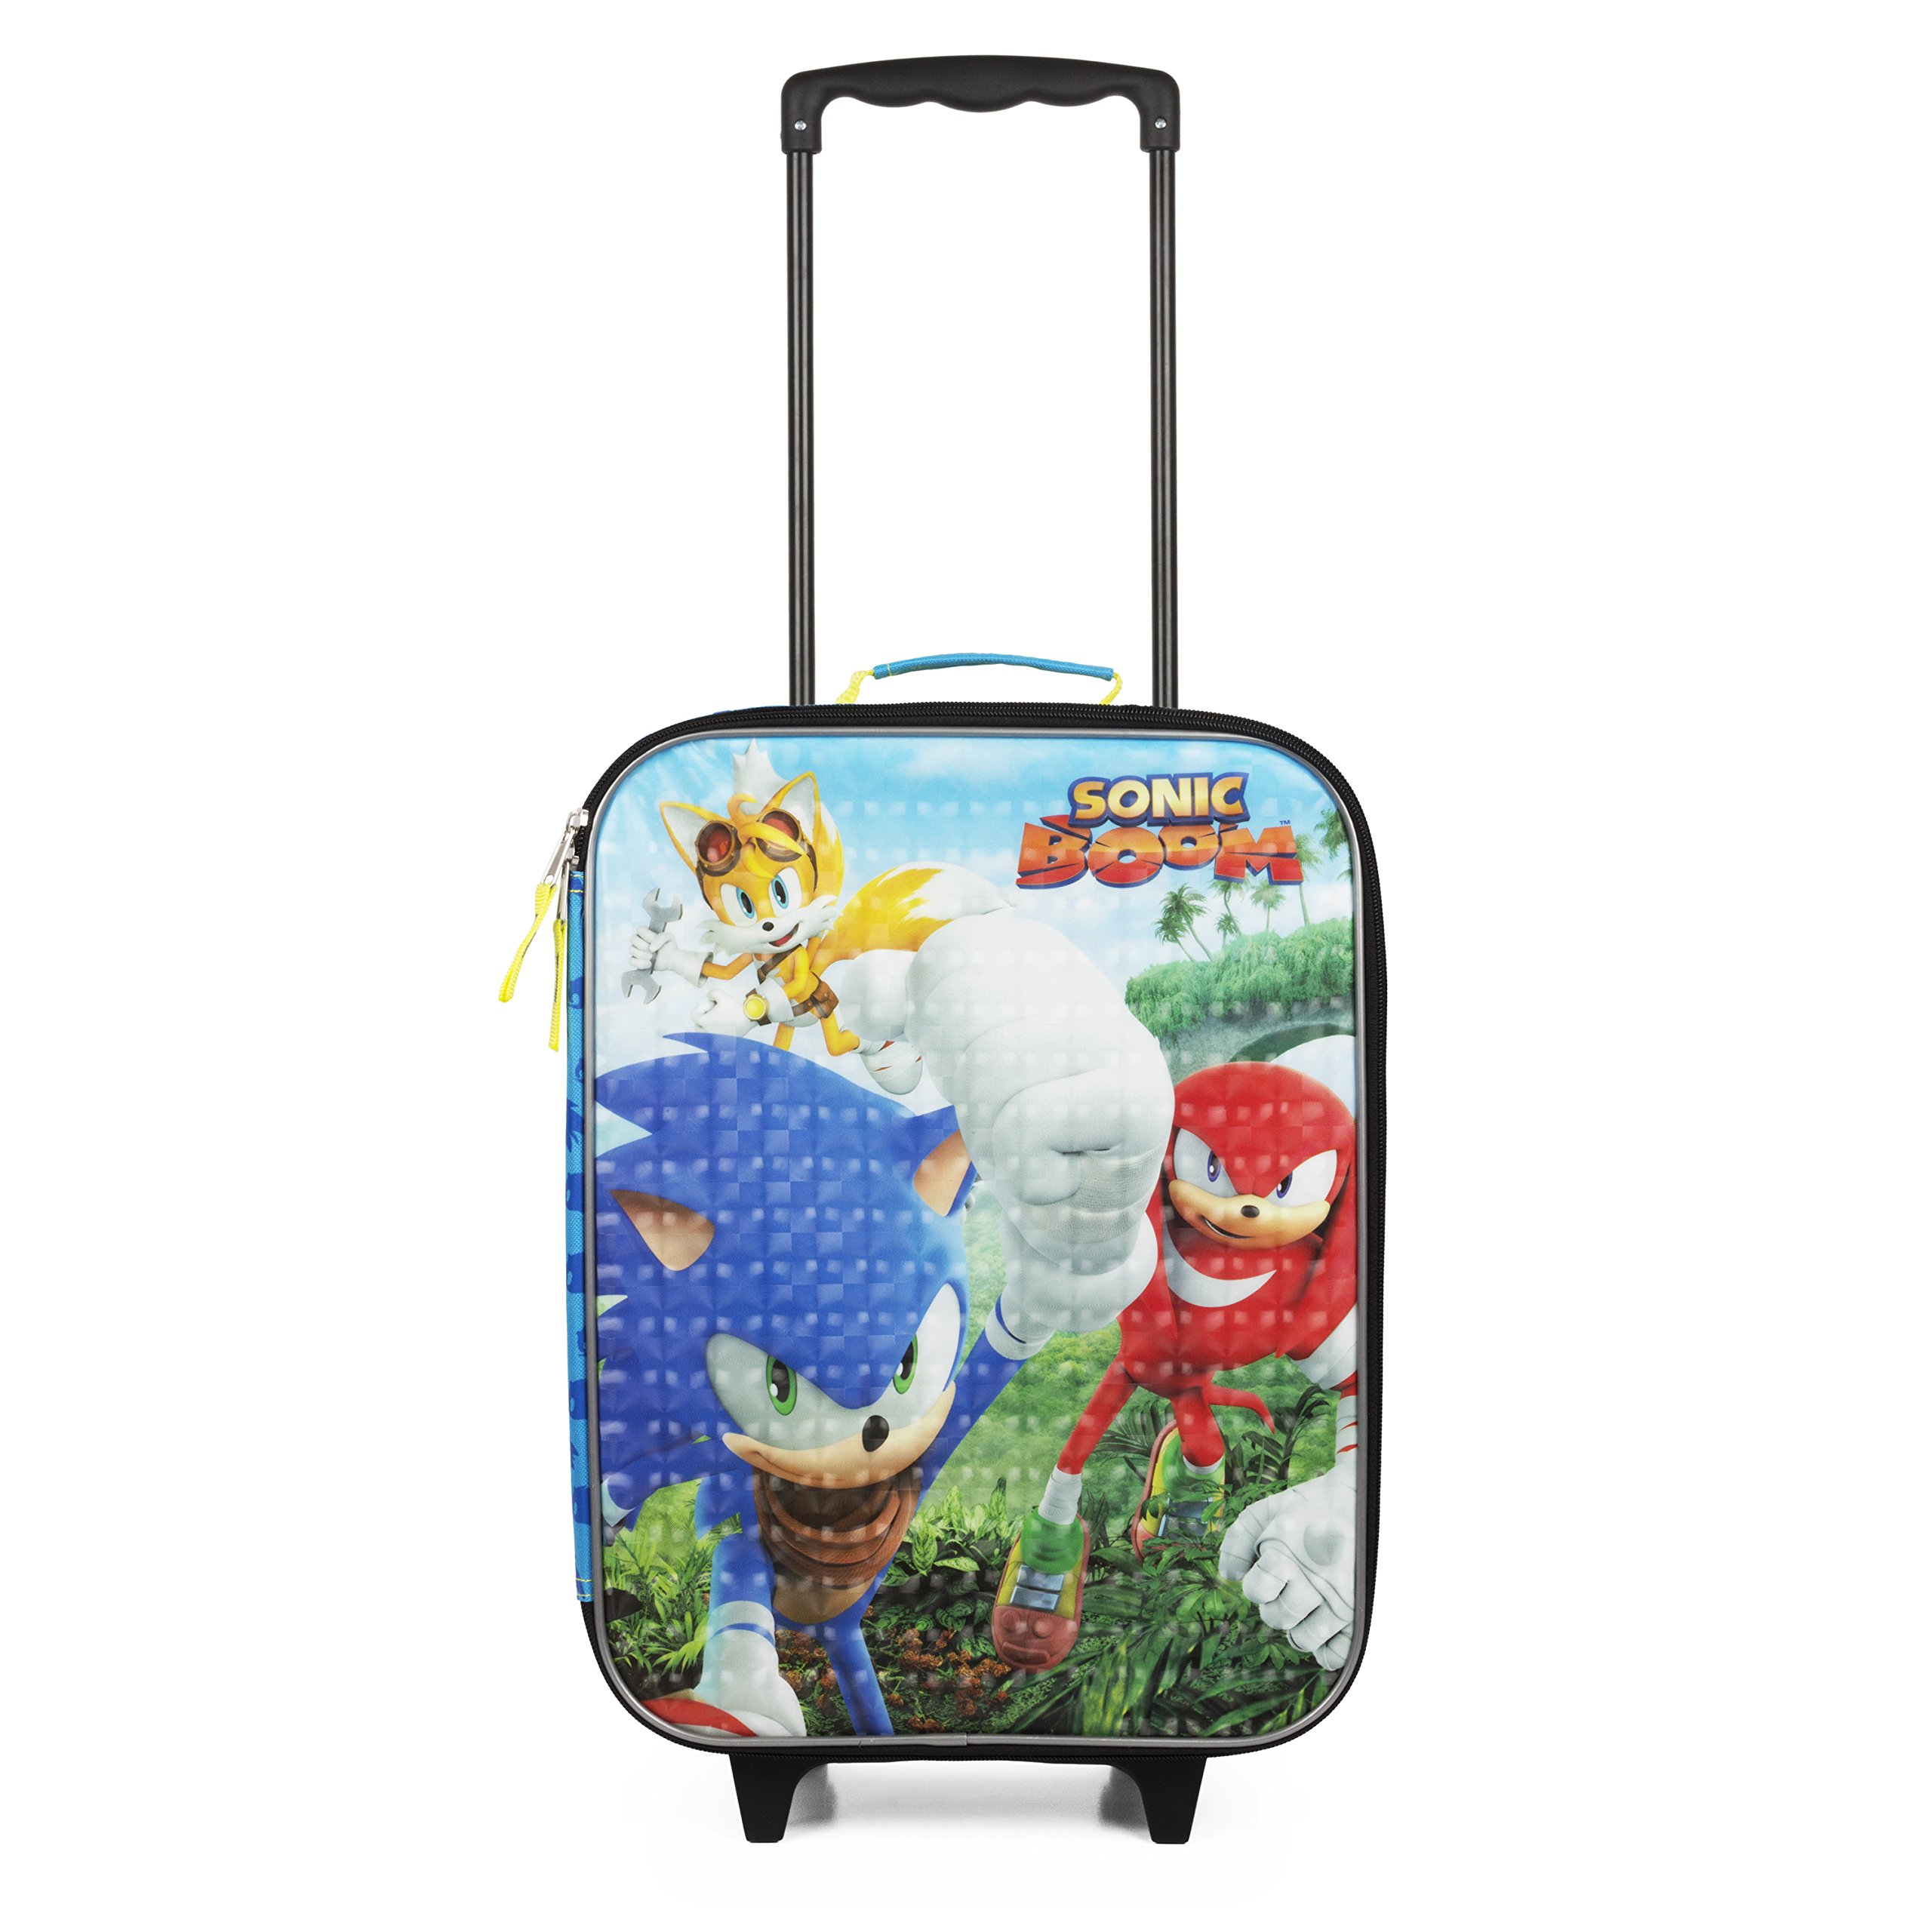 Sega Sonic Blue Travel Pilot Case Luggage for Boys